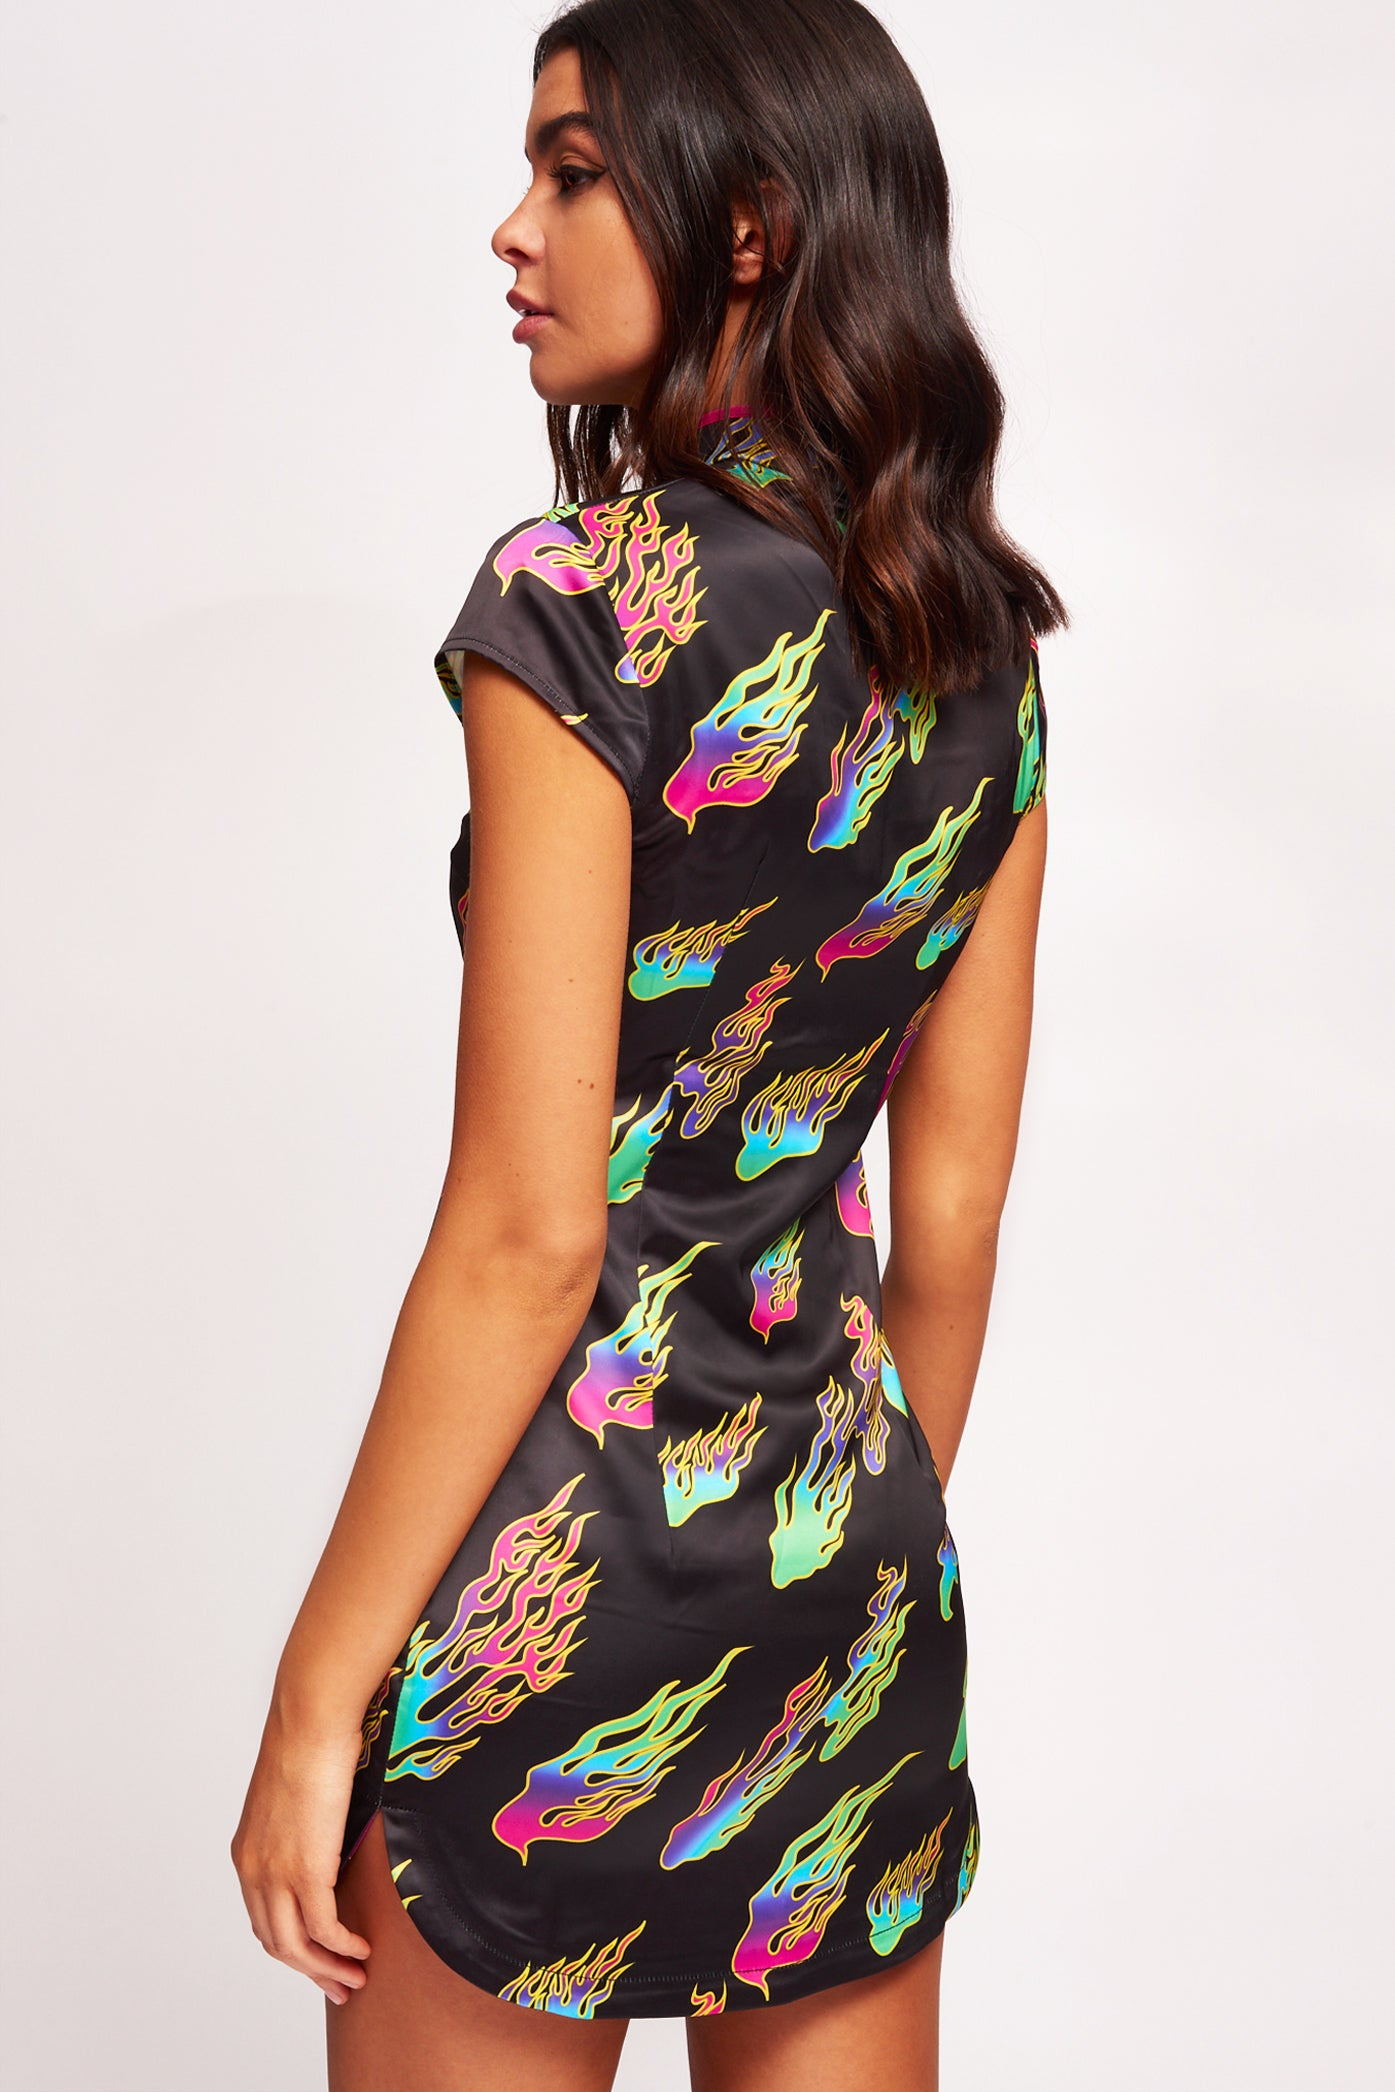 Rainbow Flame Print Cut Out High Neck  Mini Dress